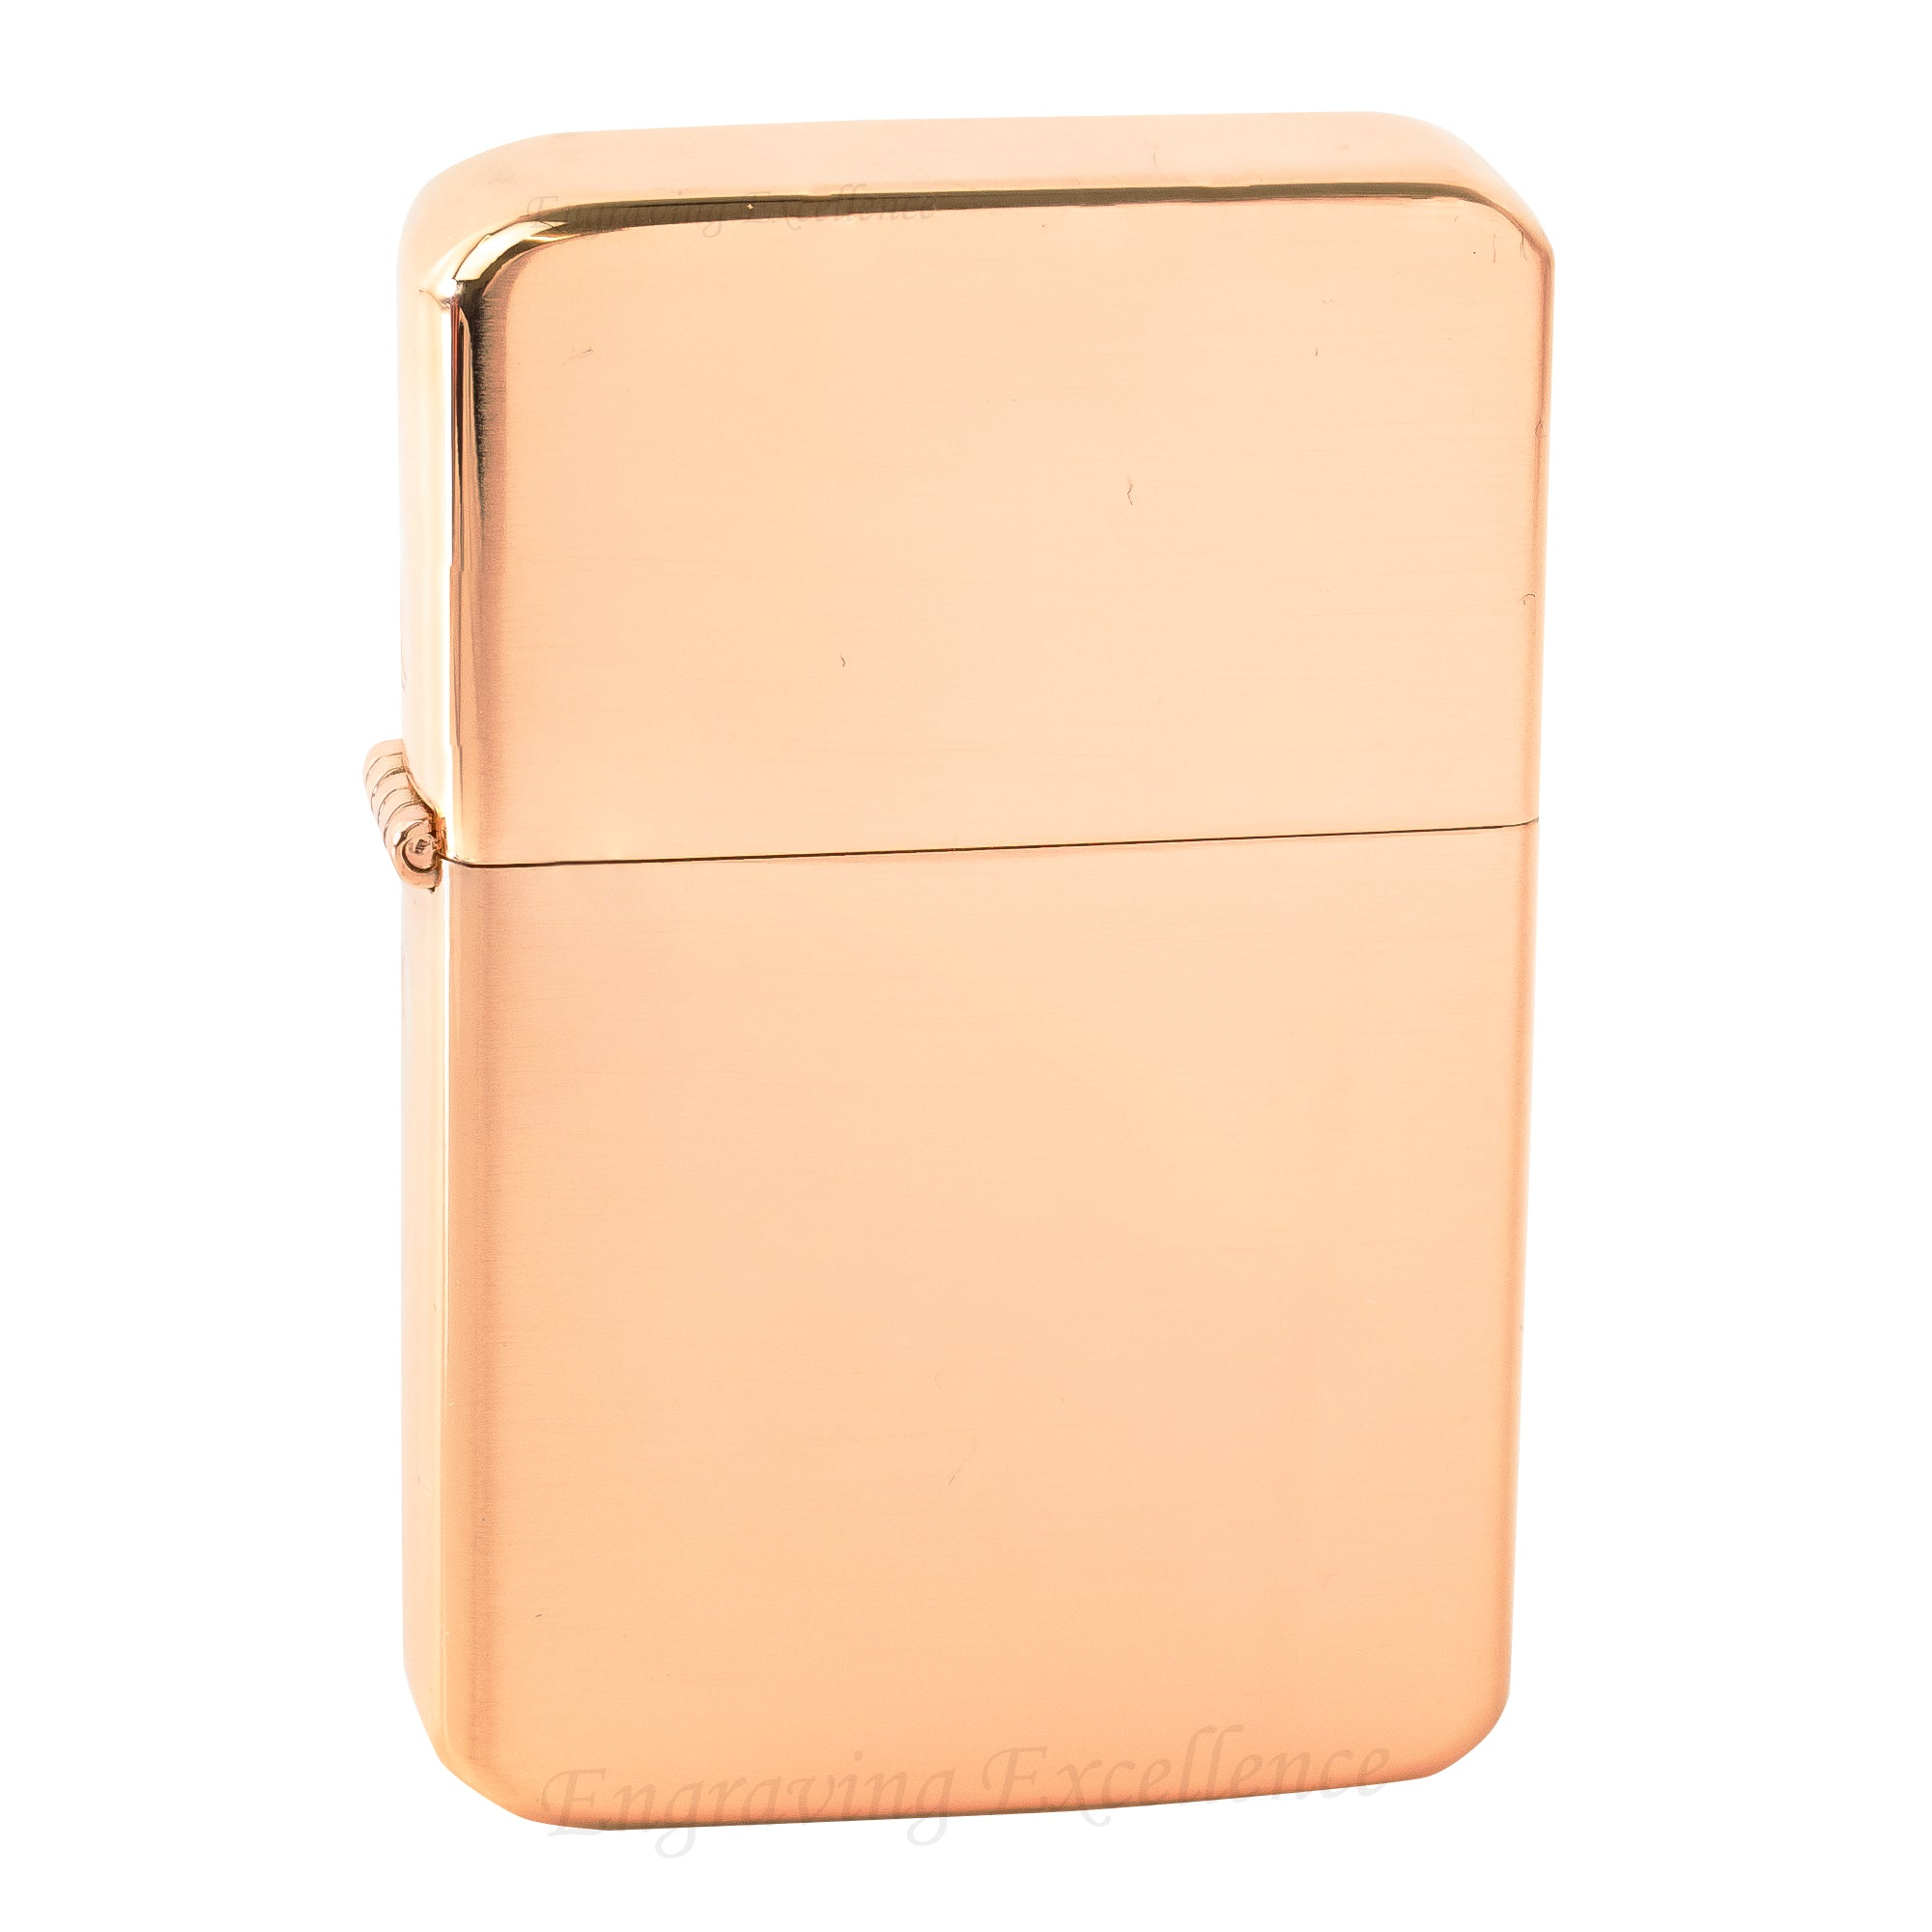 Premium Brass Flip Lighter - Rose Gold